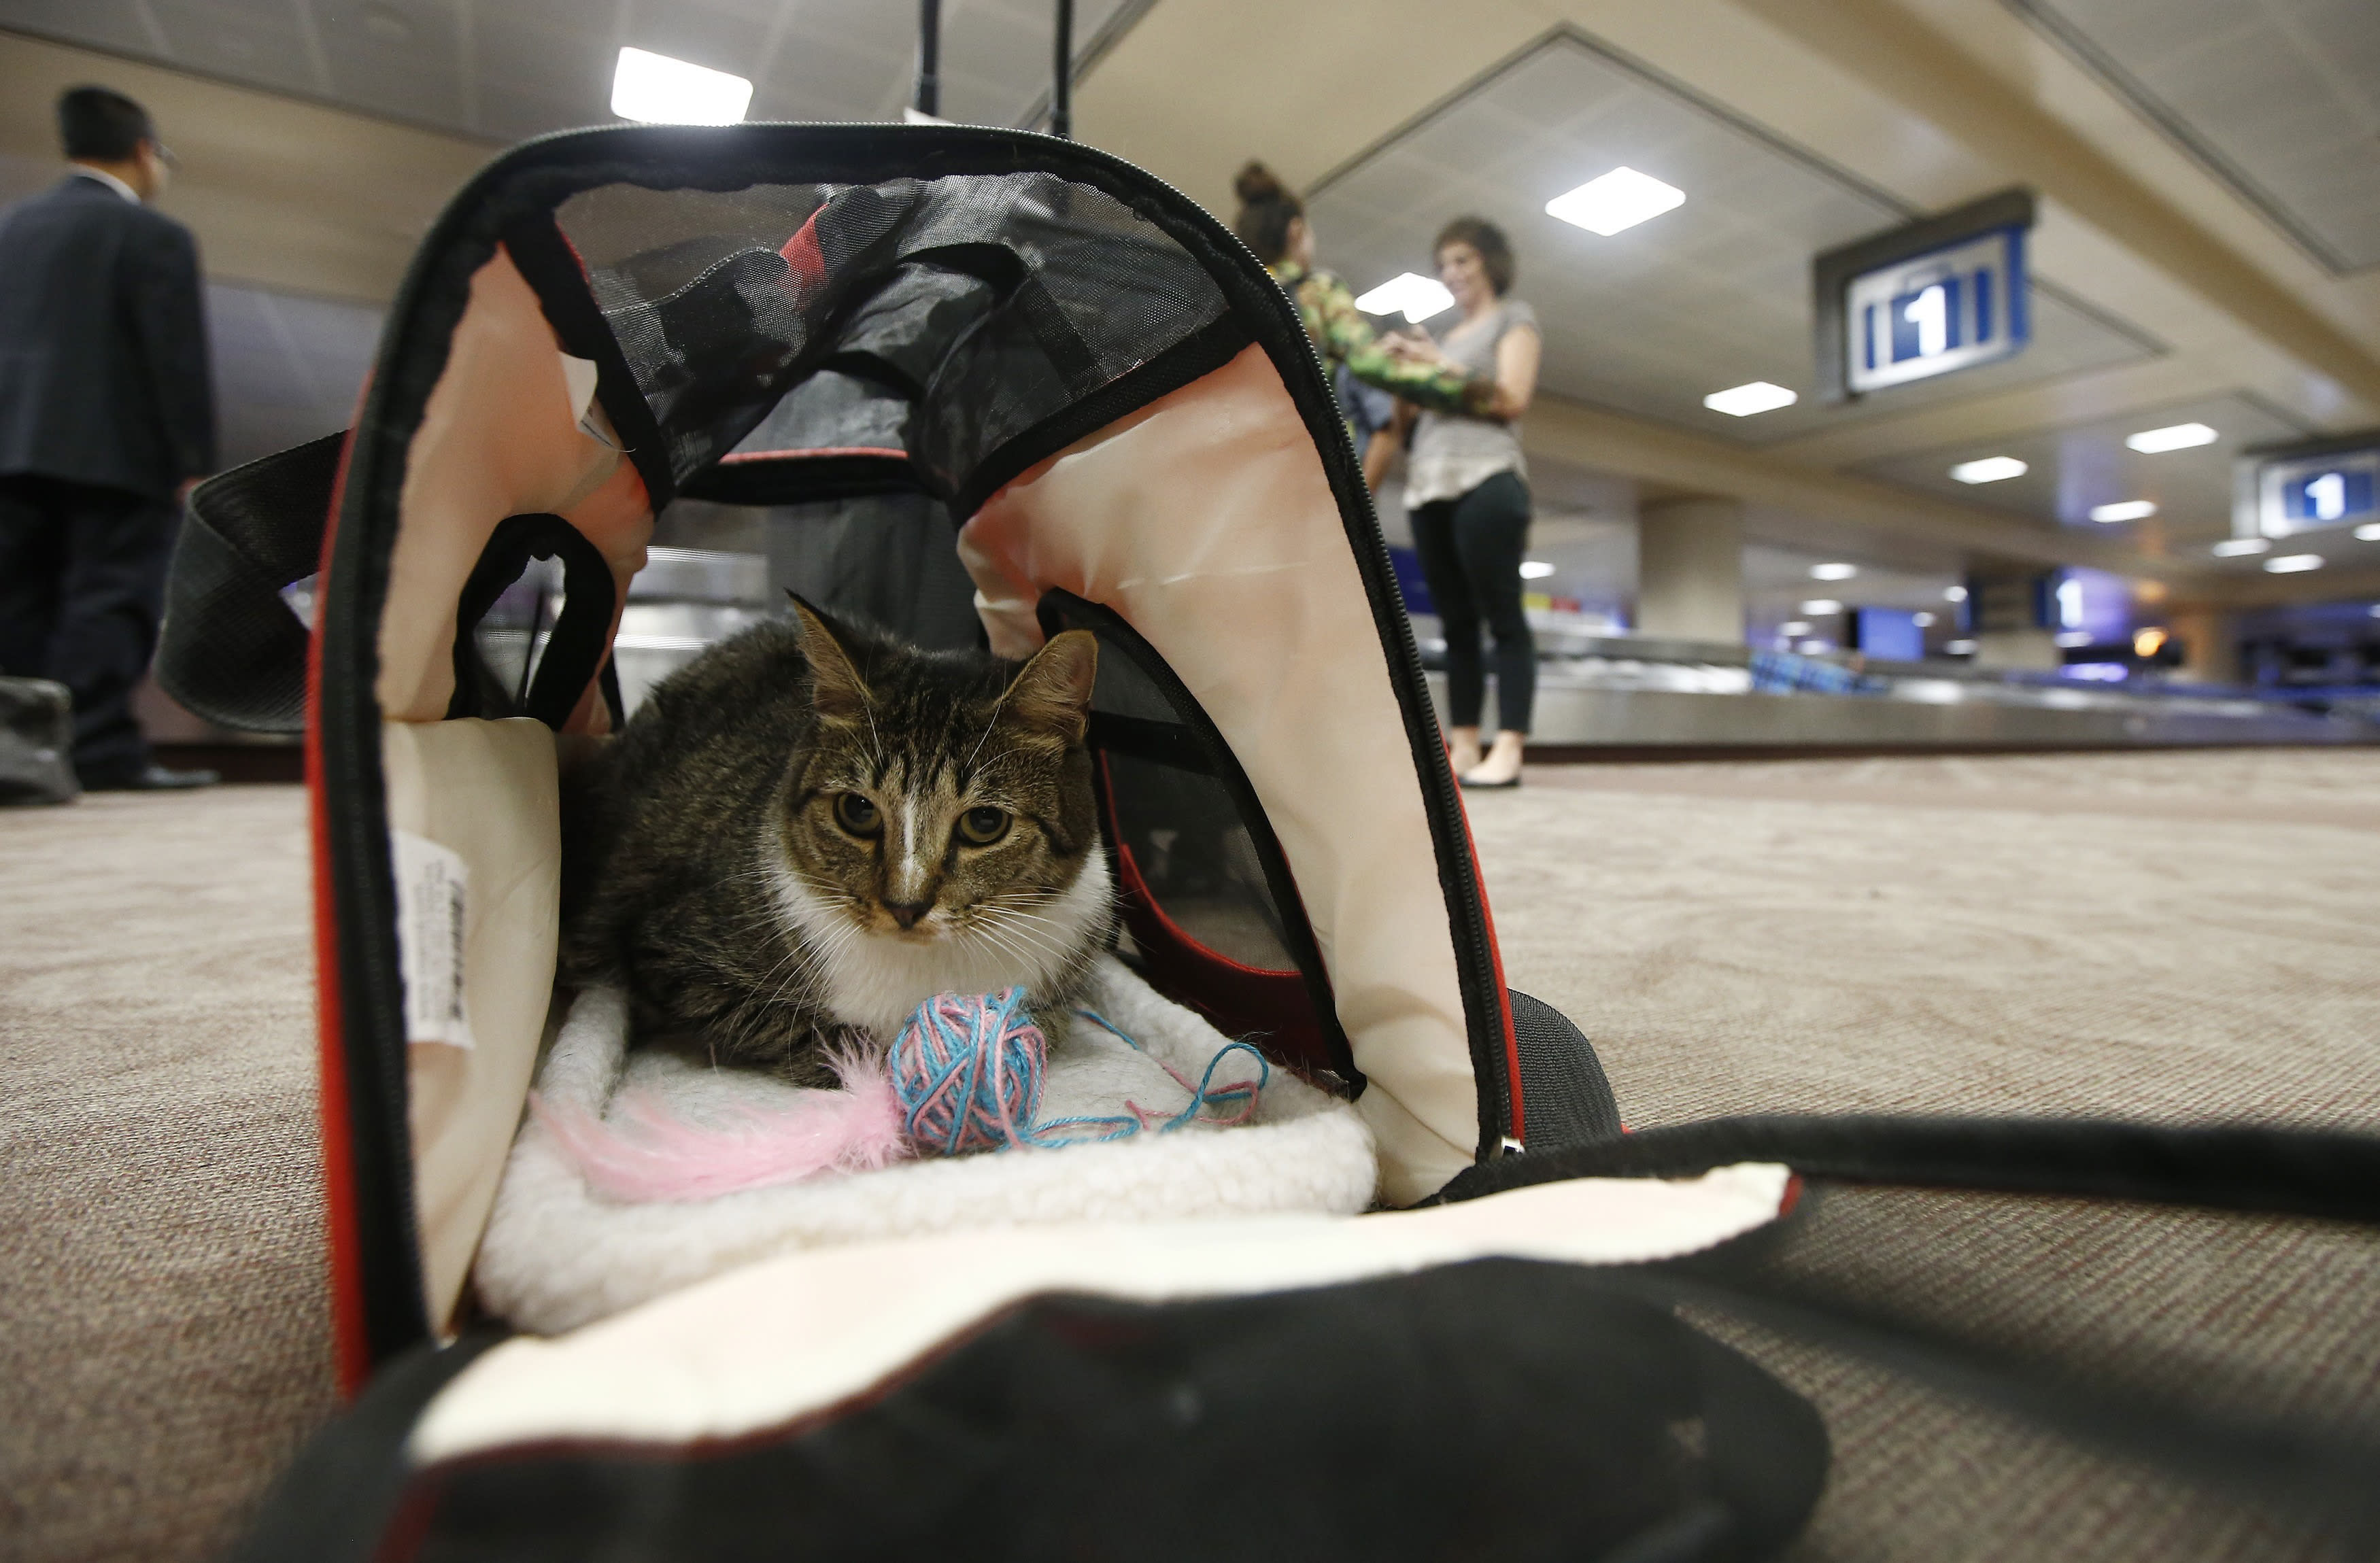 DOT Proposes Banning 'Emotional Support Animals' on Airplanes